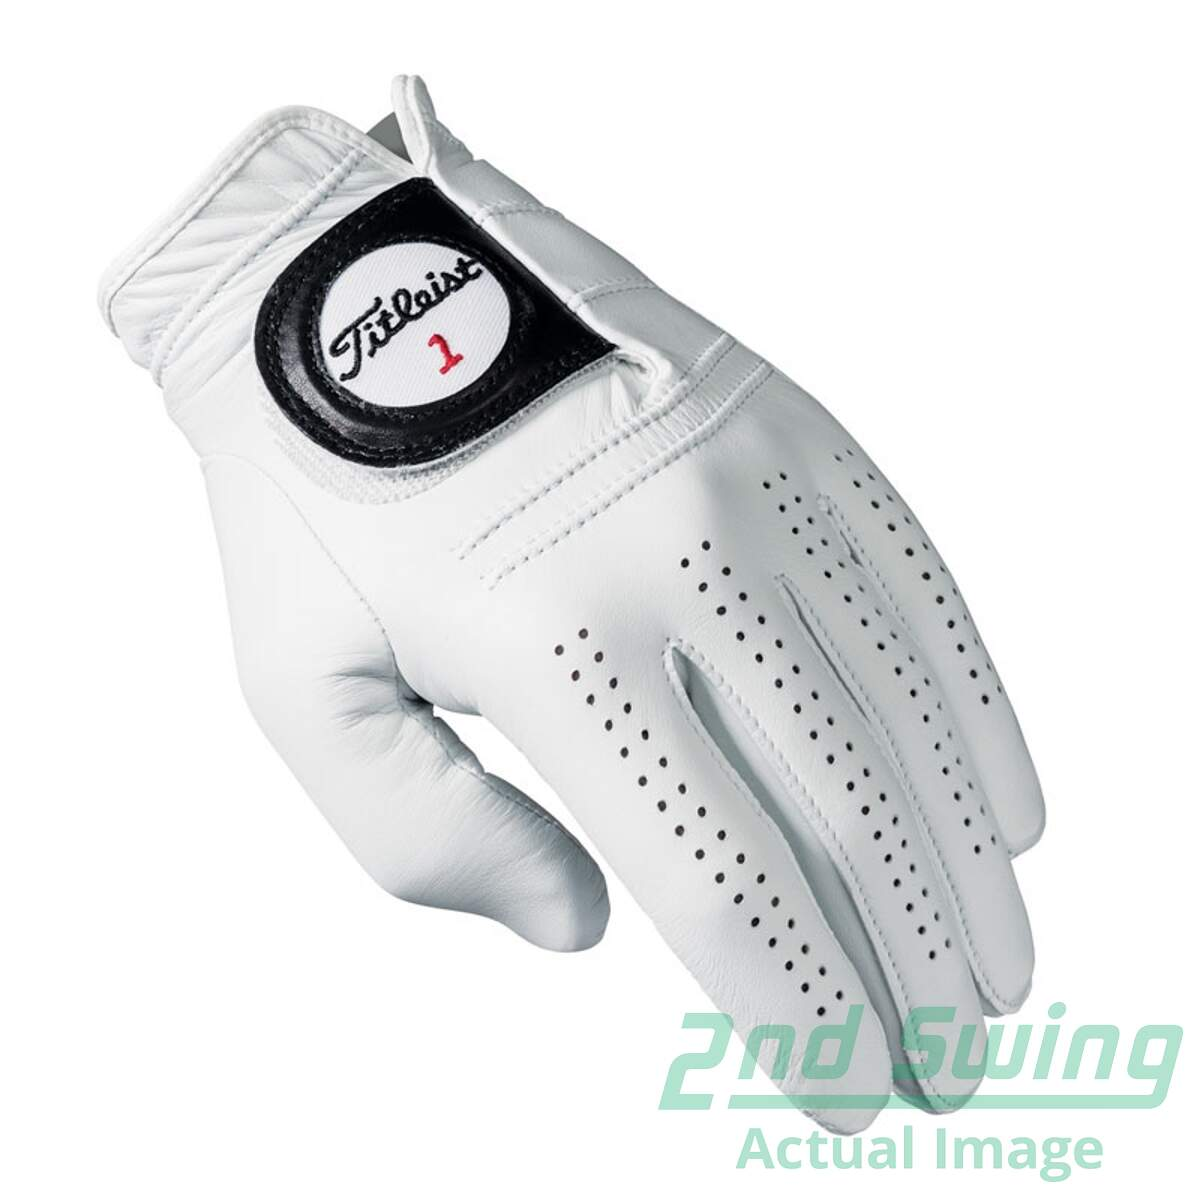 New mens titleist players golf glove xx large xxl leather left handed